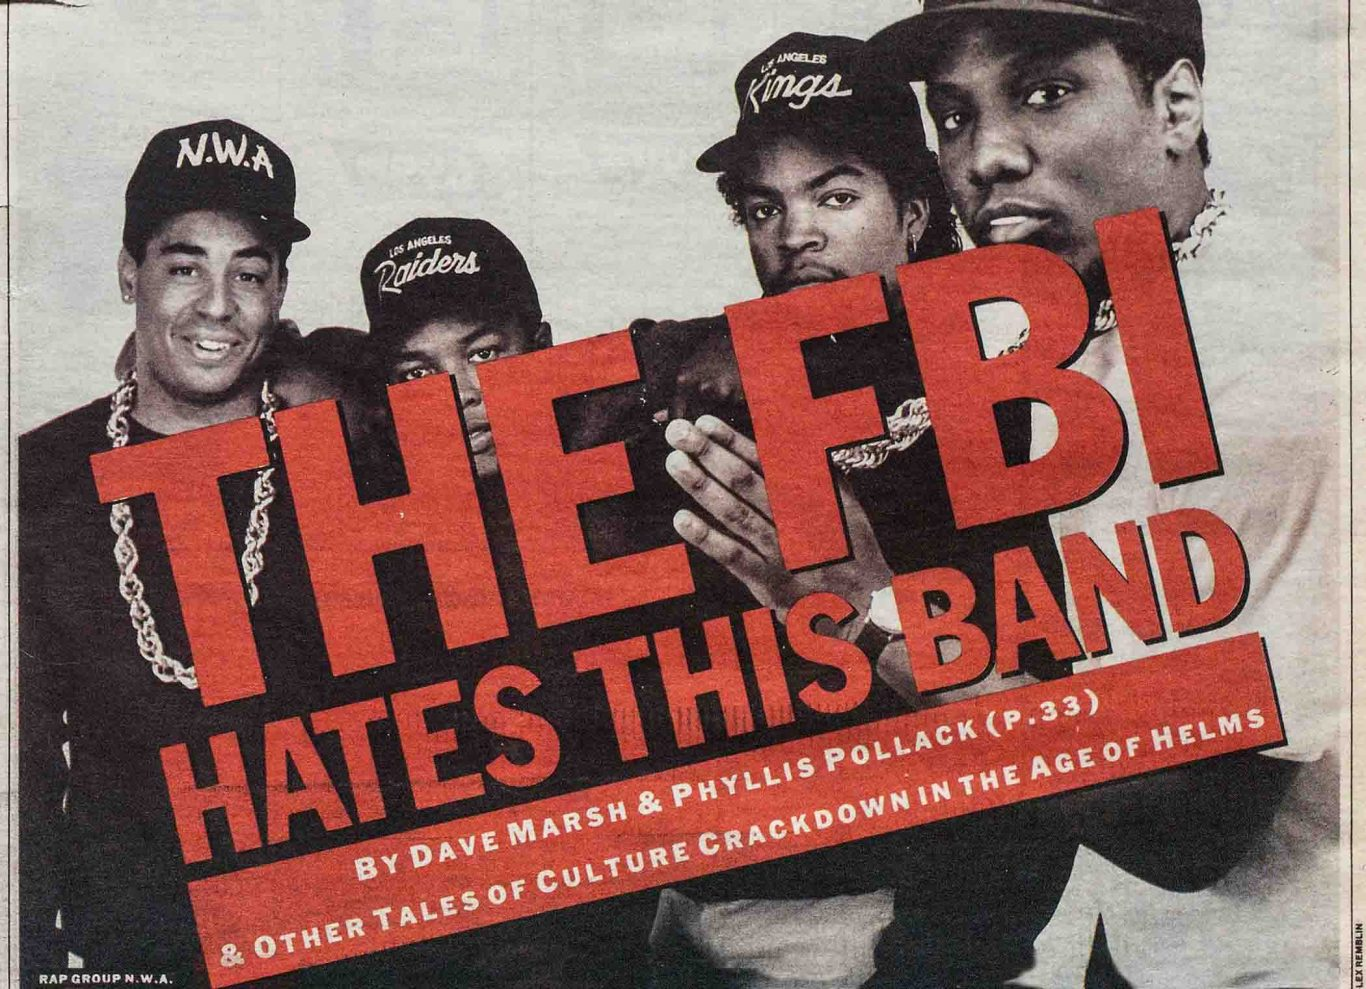 1989 Village Voice article by Dave Marsh and Phyllis Pollack about FBI tracking NWA-THE FBI HATES THIS BAND